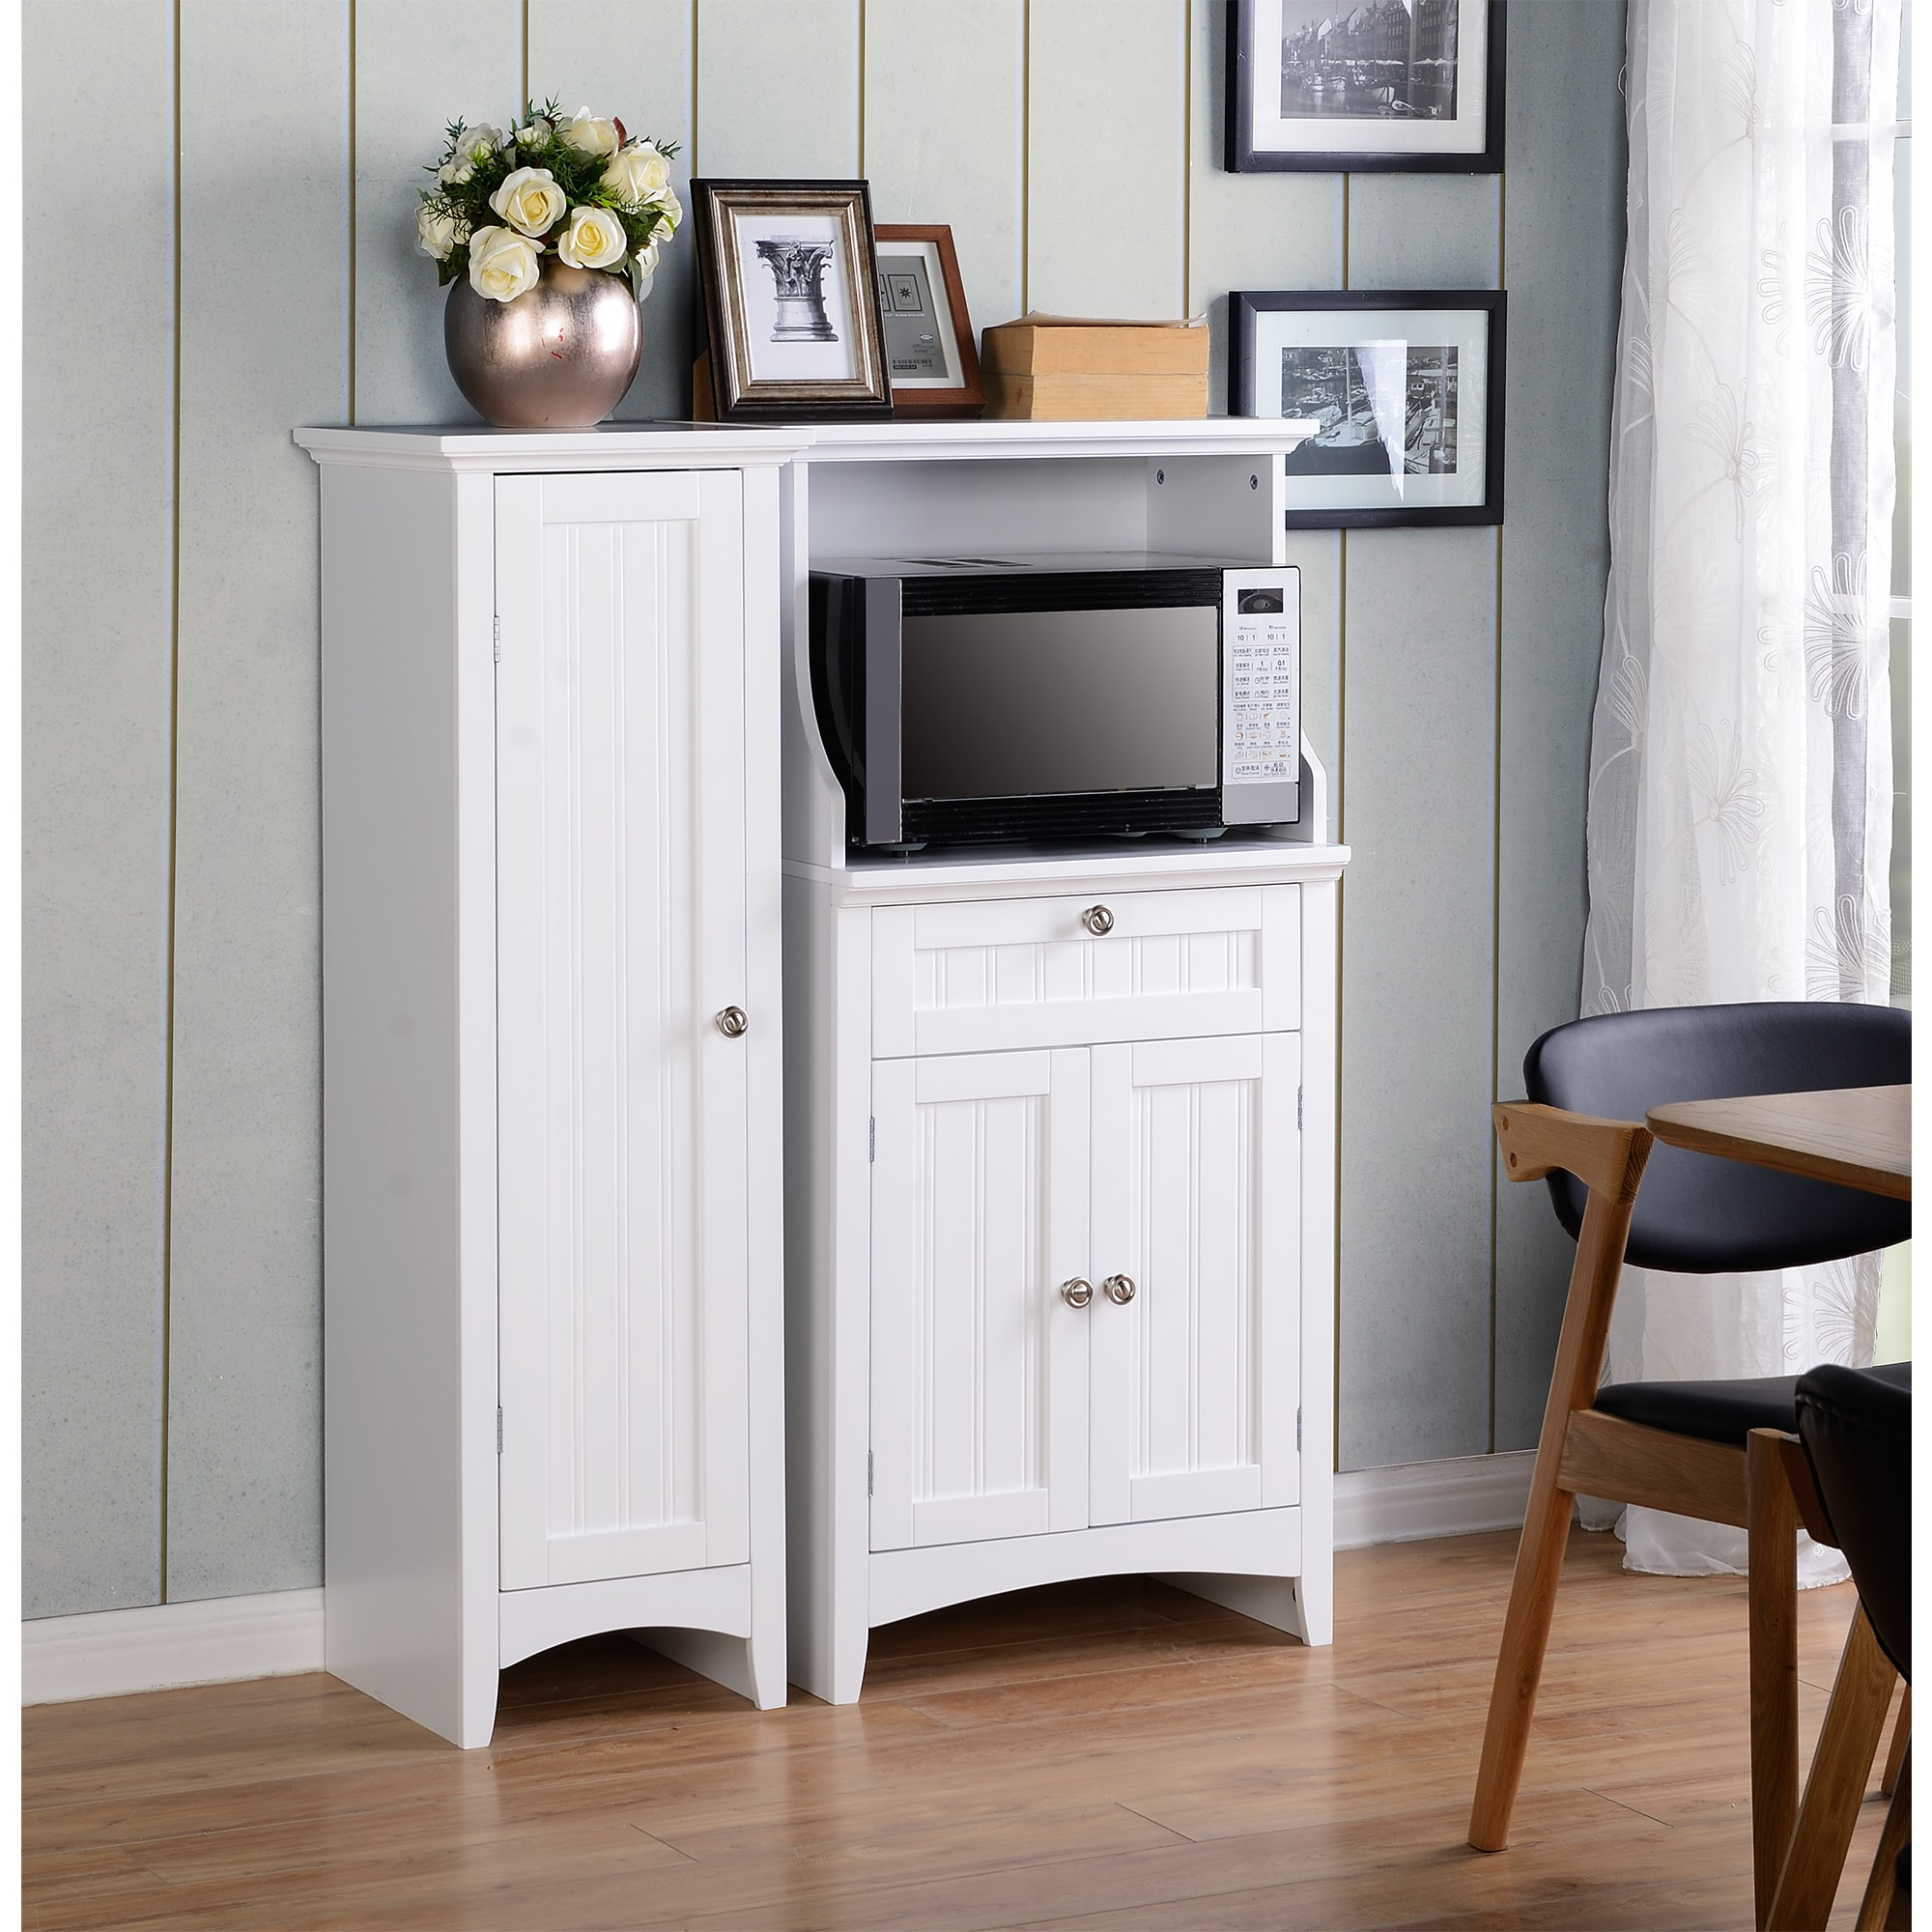 stand beaufiful your walmart complete corner lowes shelves island cool drawer gallery storage pantry unique lovely kitchen microwave carts with narrow target cabinet impressive and mic cart images design hutch